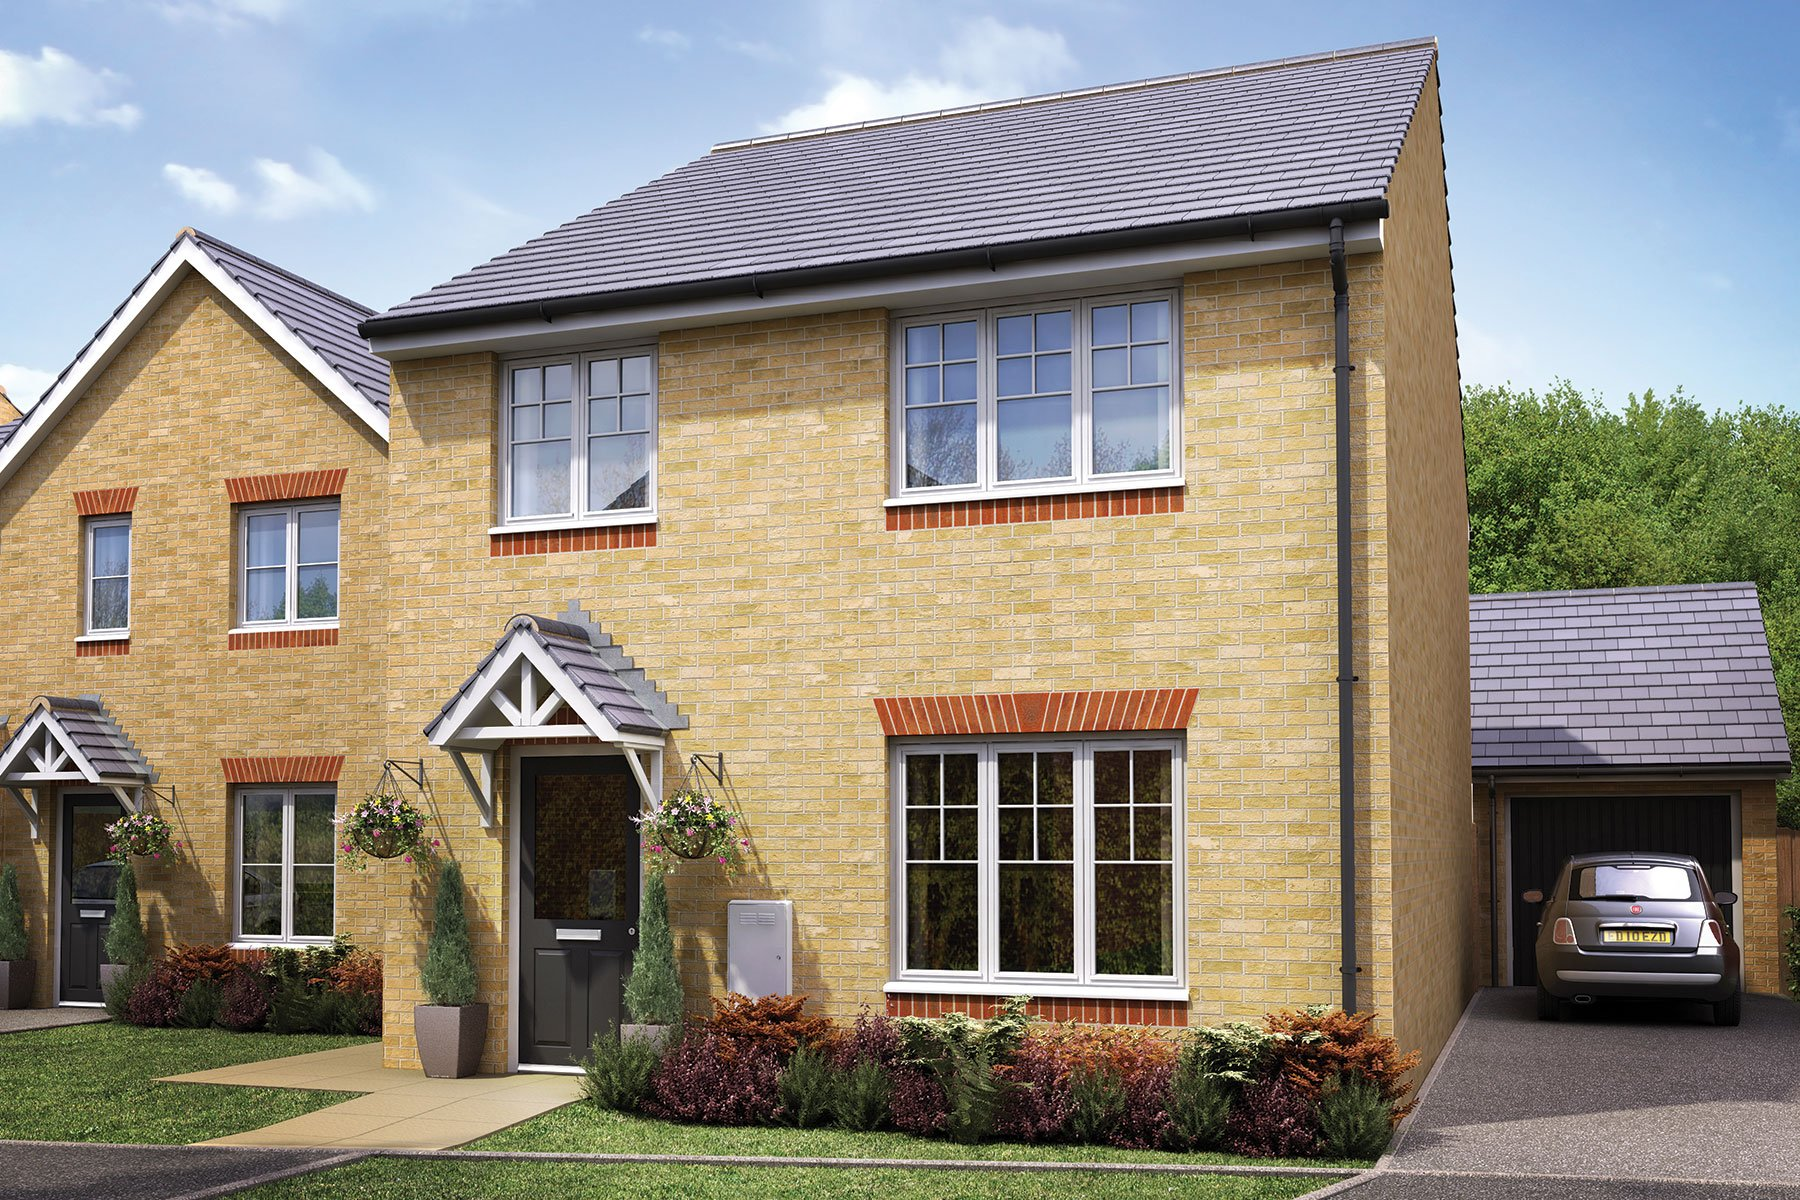 The Midford Taylor Wimpey